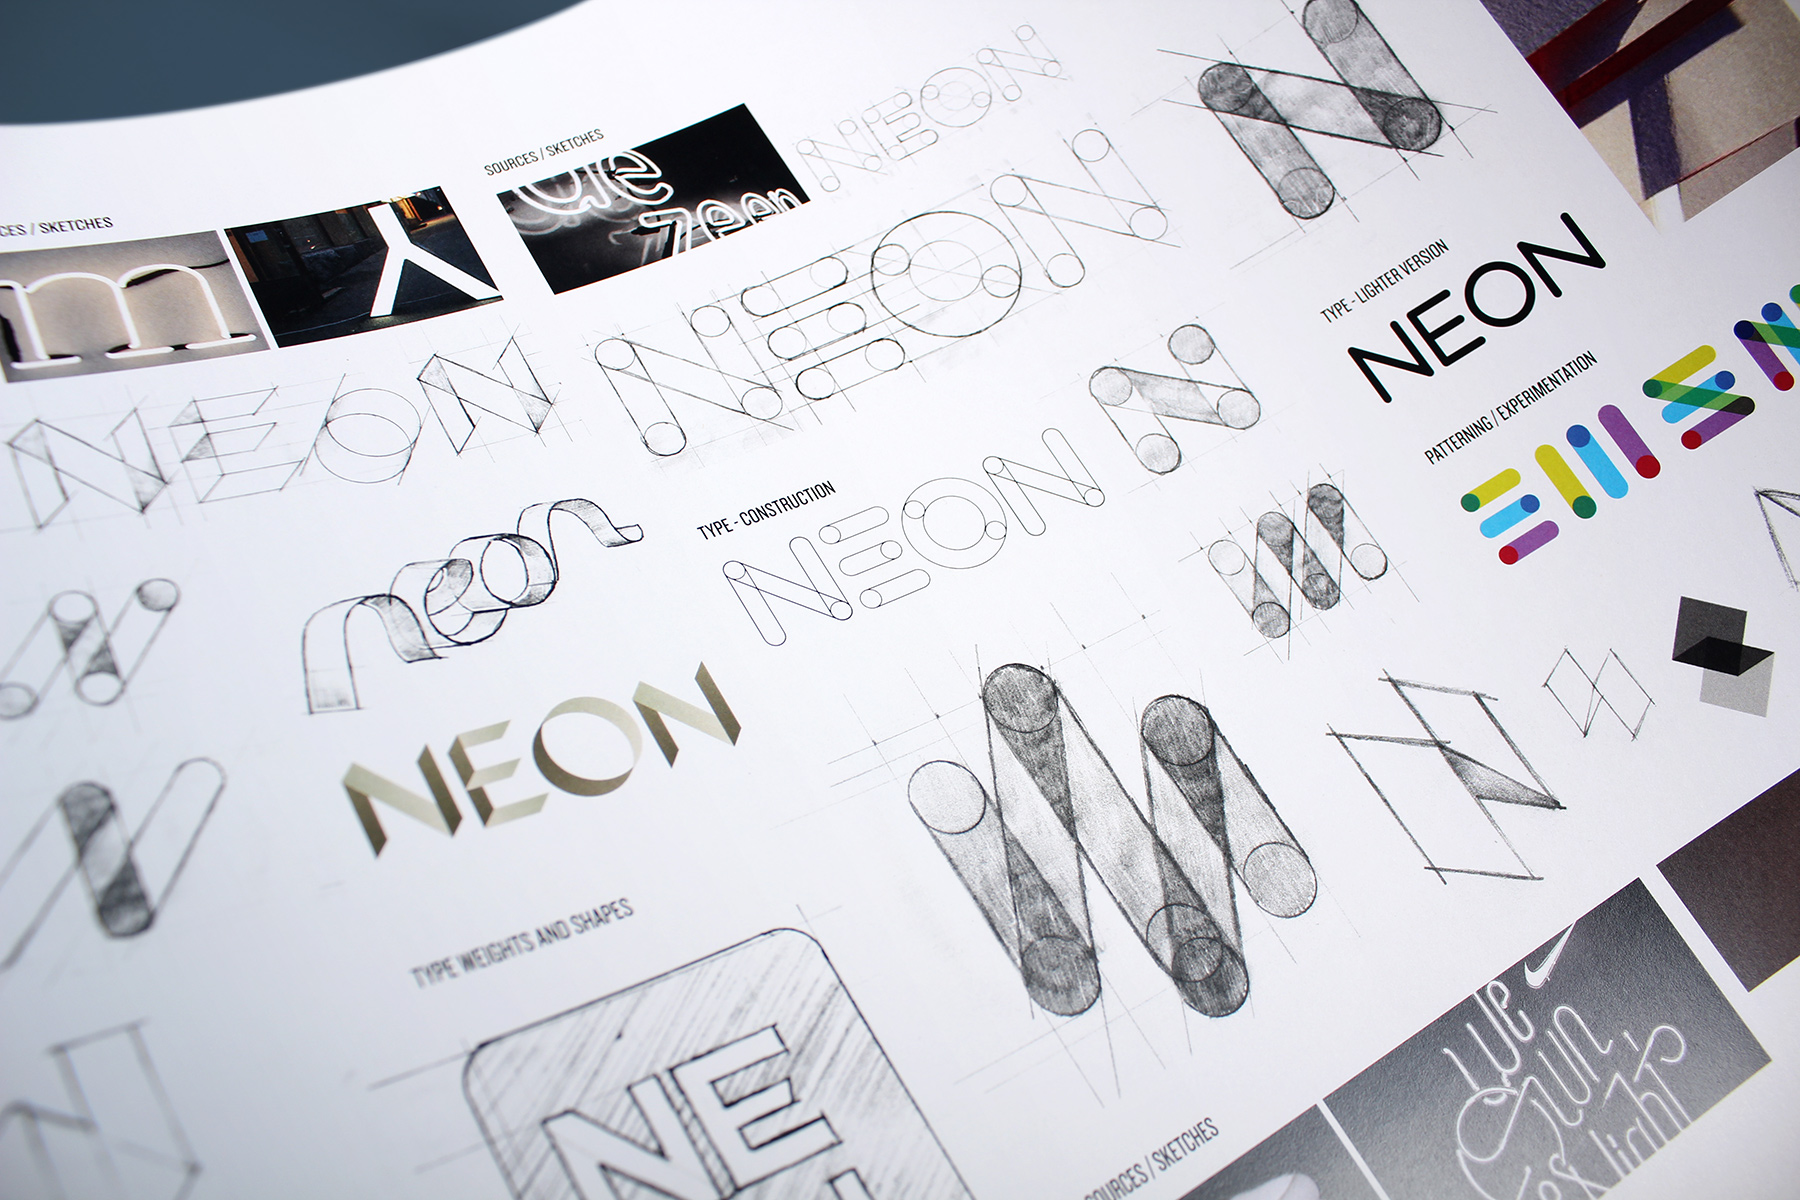 Neon is a wonderfully simple name, connected to an entire world of properties and meanings. We wanted to express its exuberant nature through hand cut type and icons.